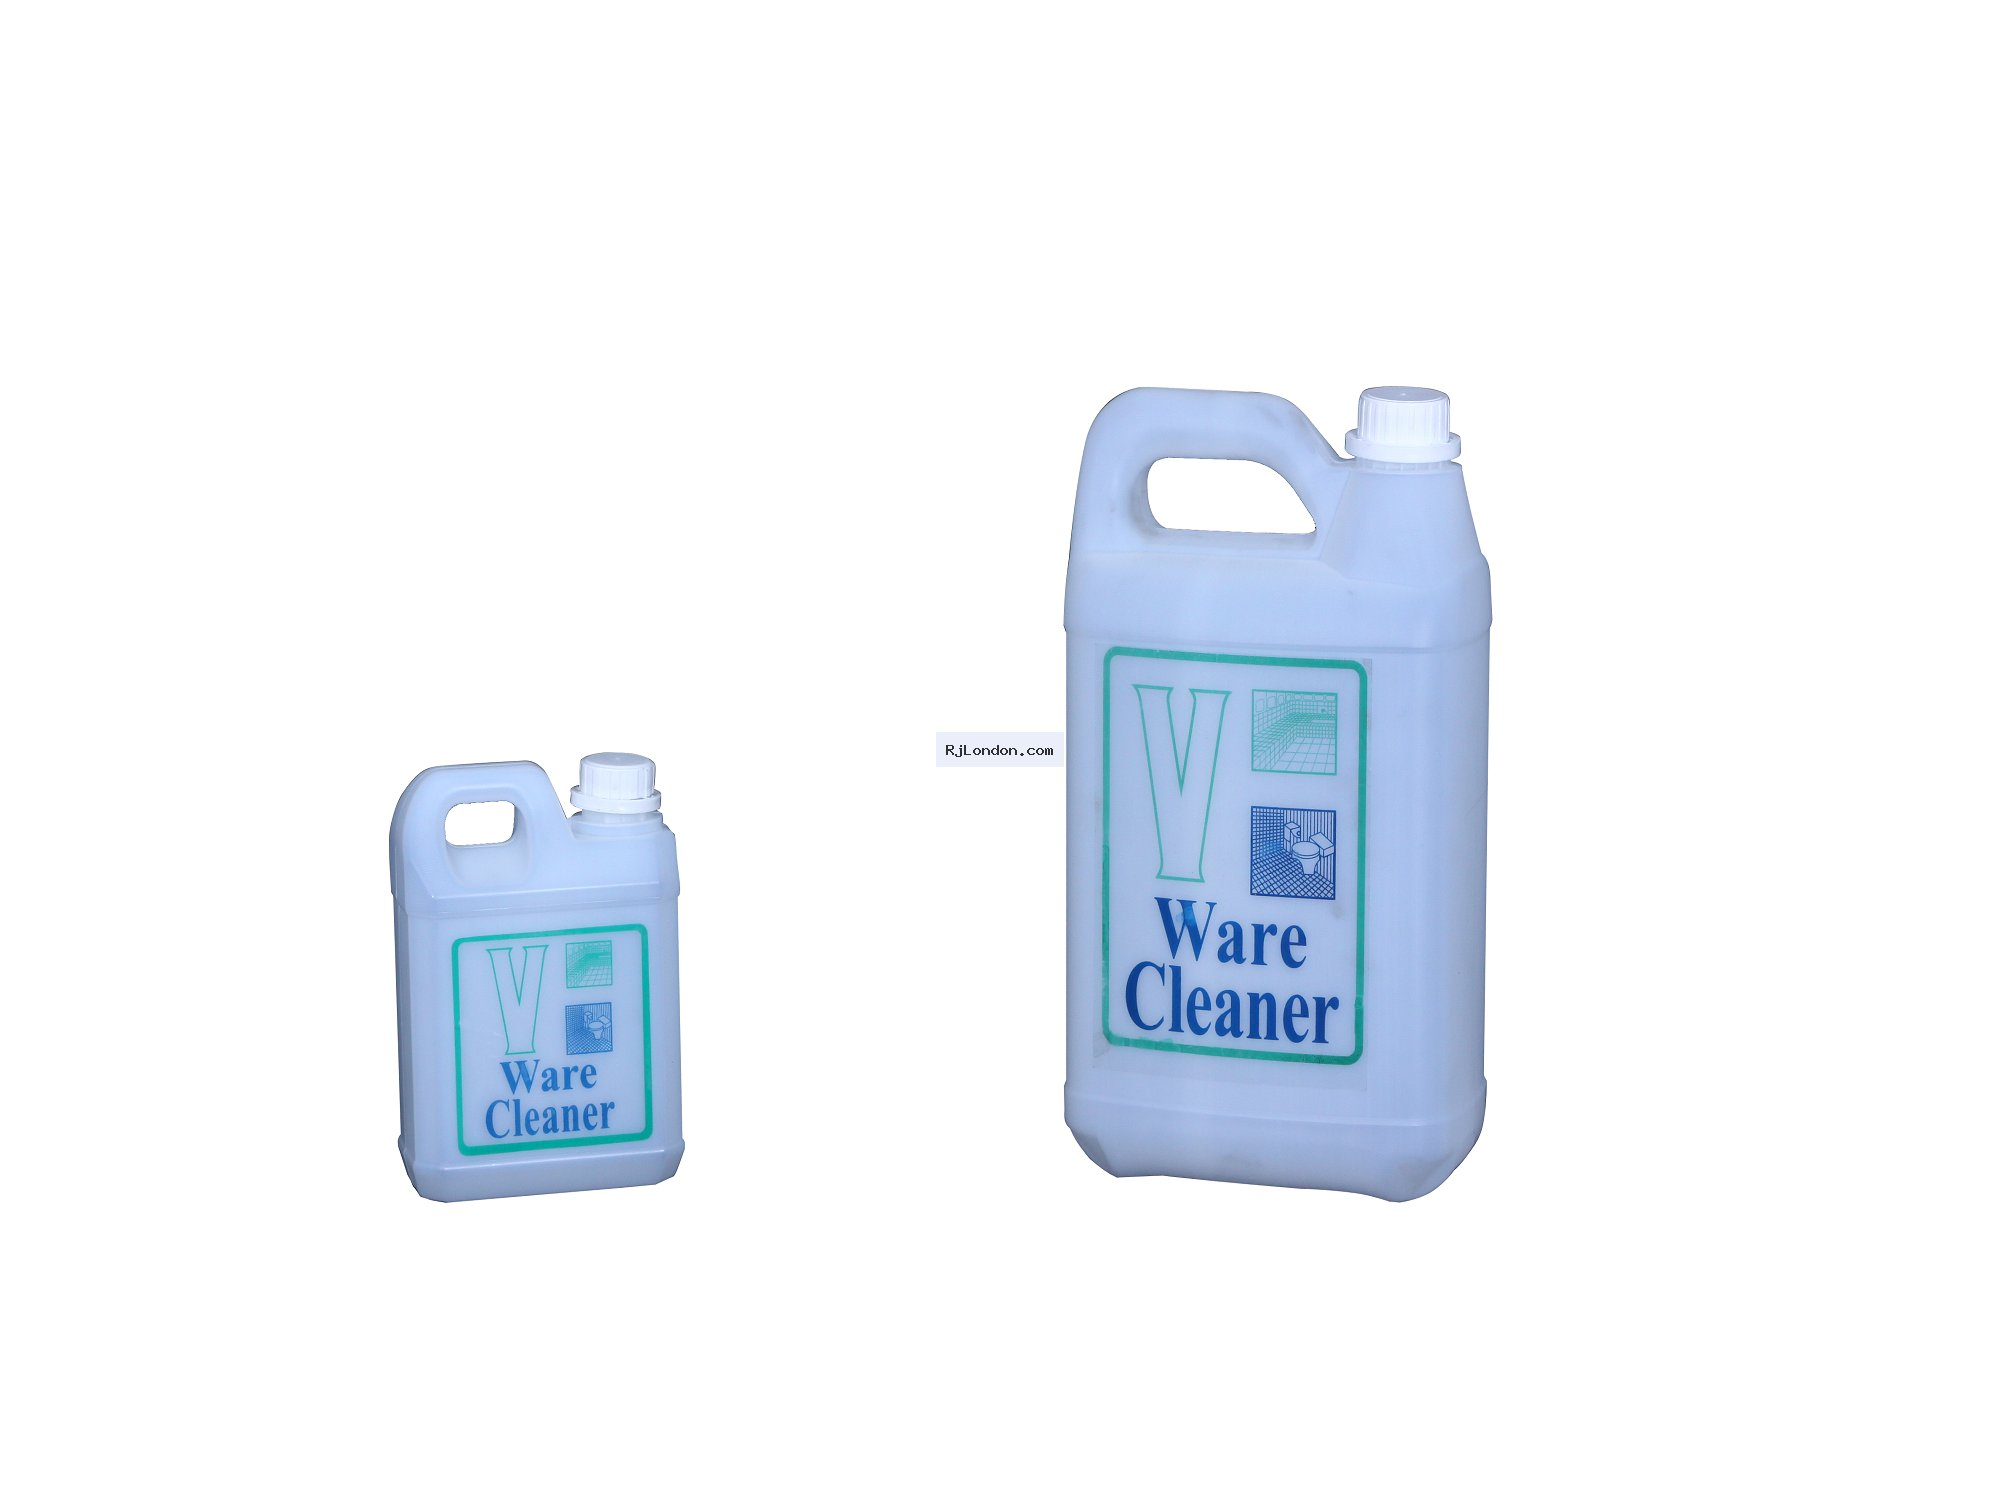 Ware Cleaner